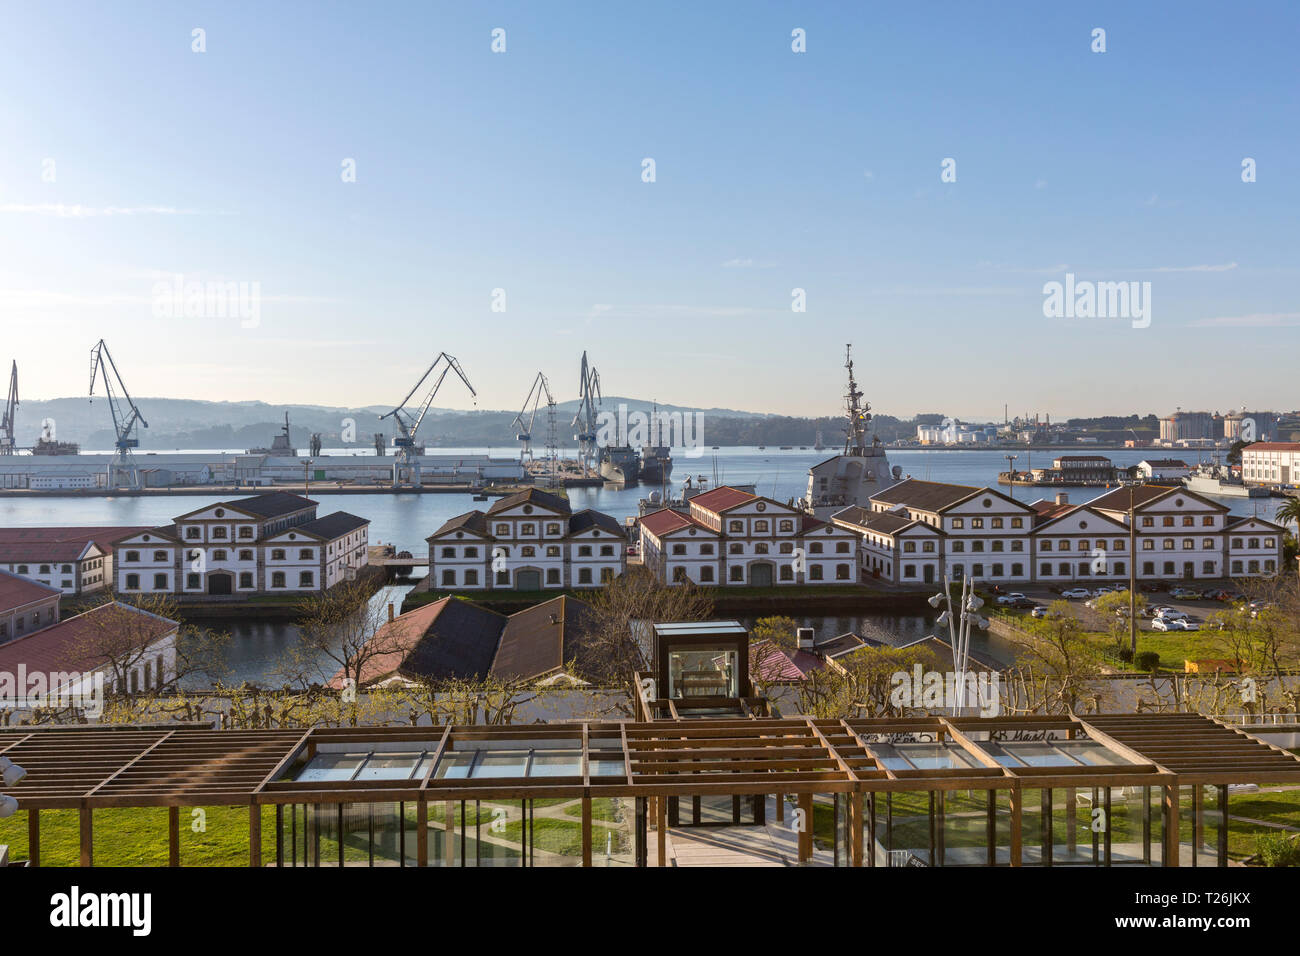 Ferrol Naval Base,  military base and arsenal of the Spanish Navy in  Ferrol, A Coruña Province, Galicia, Spain - Stock Image